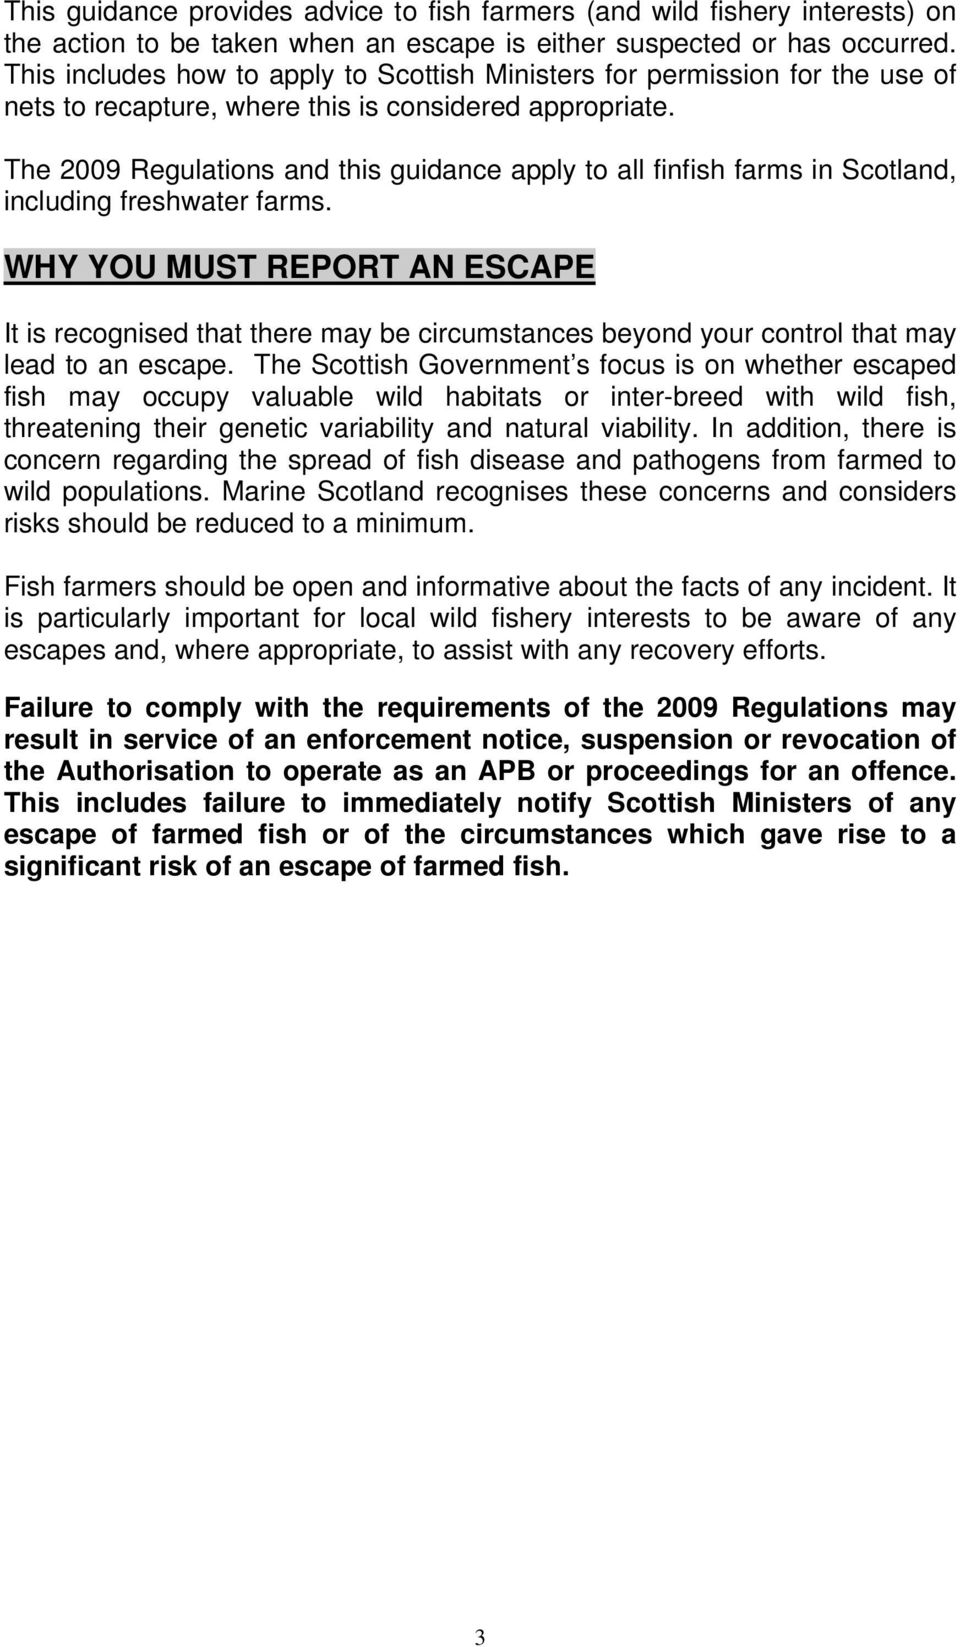 The 2009 Regulations and this guidance apply to all finfish farms in Scotland, including freshwater farms.